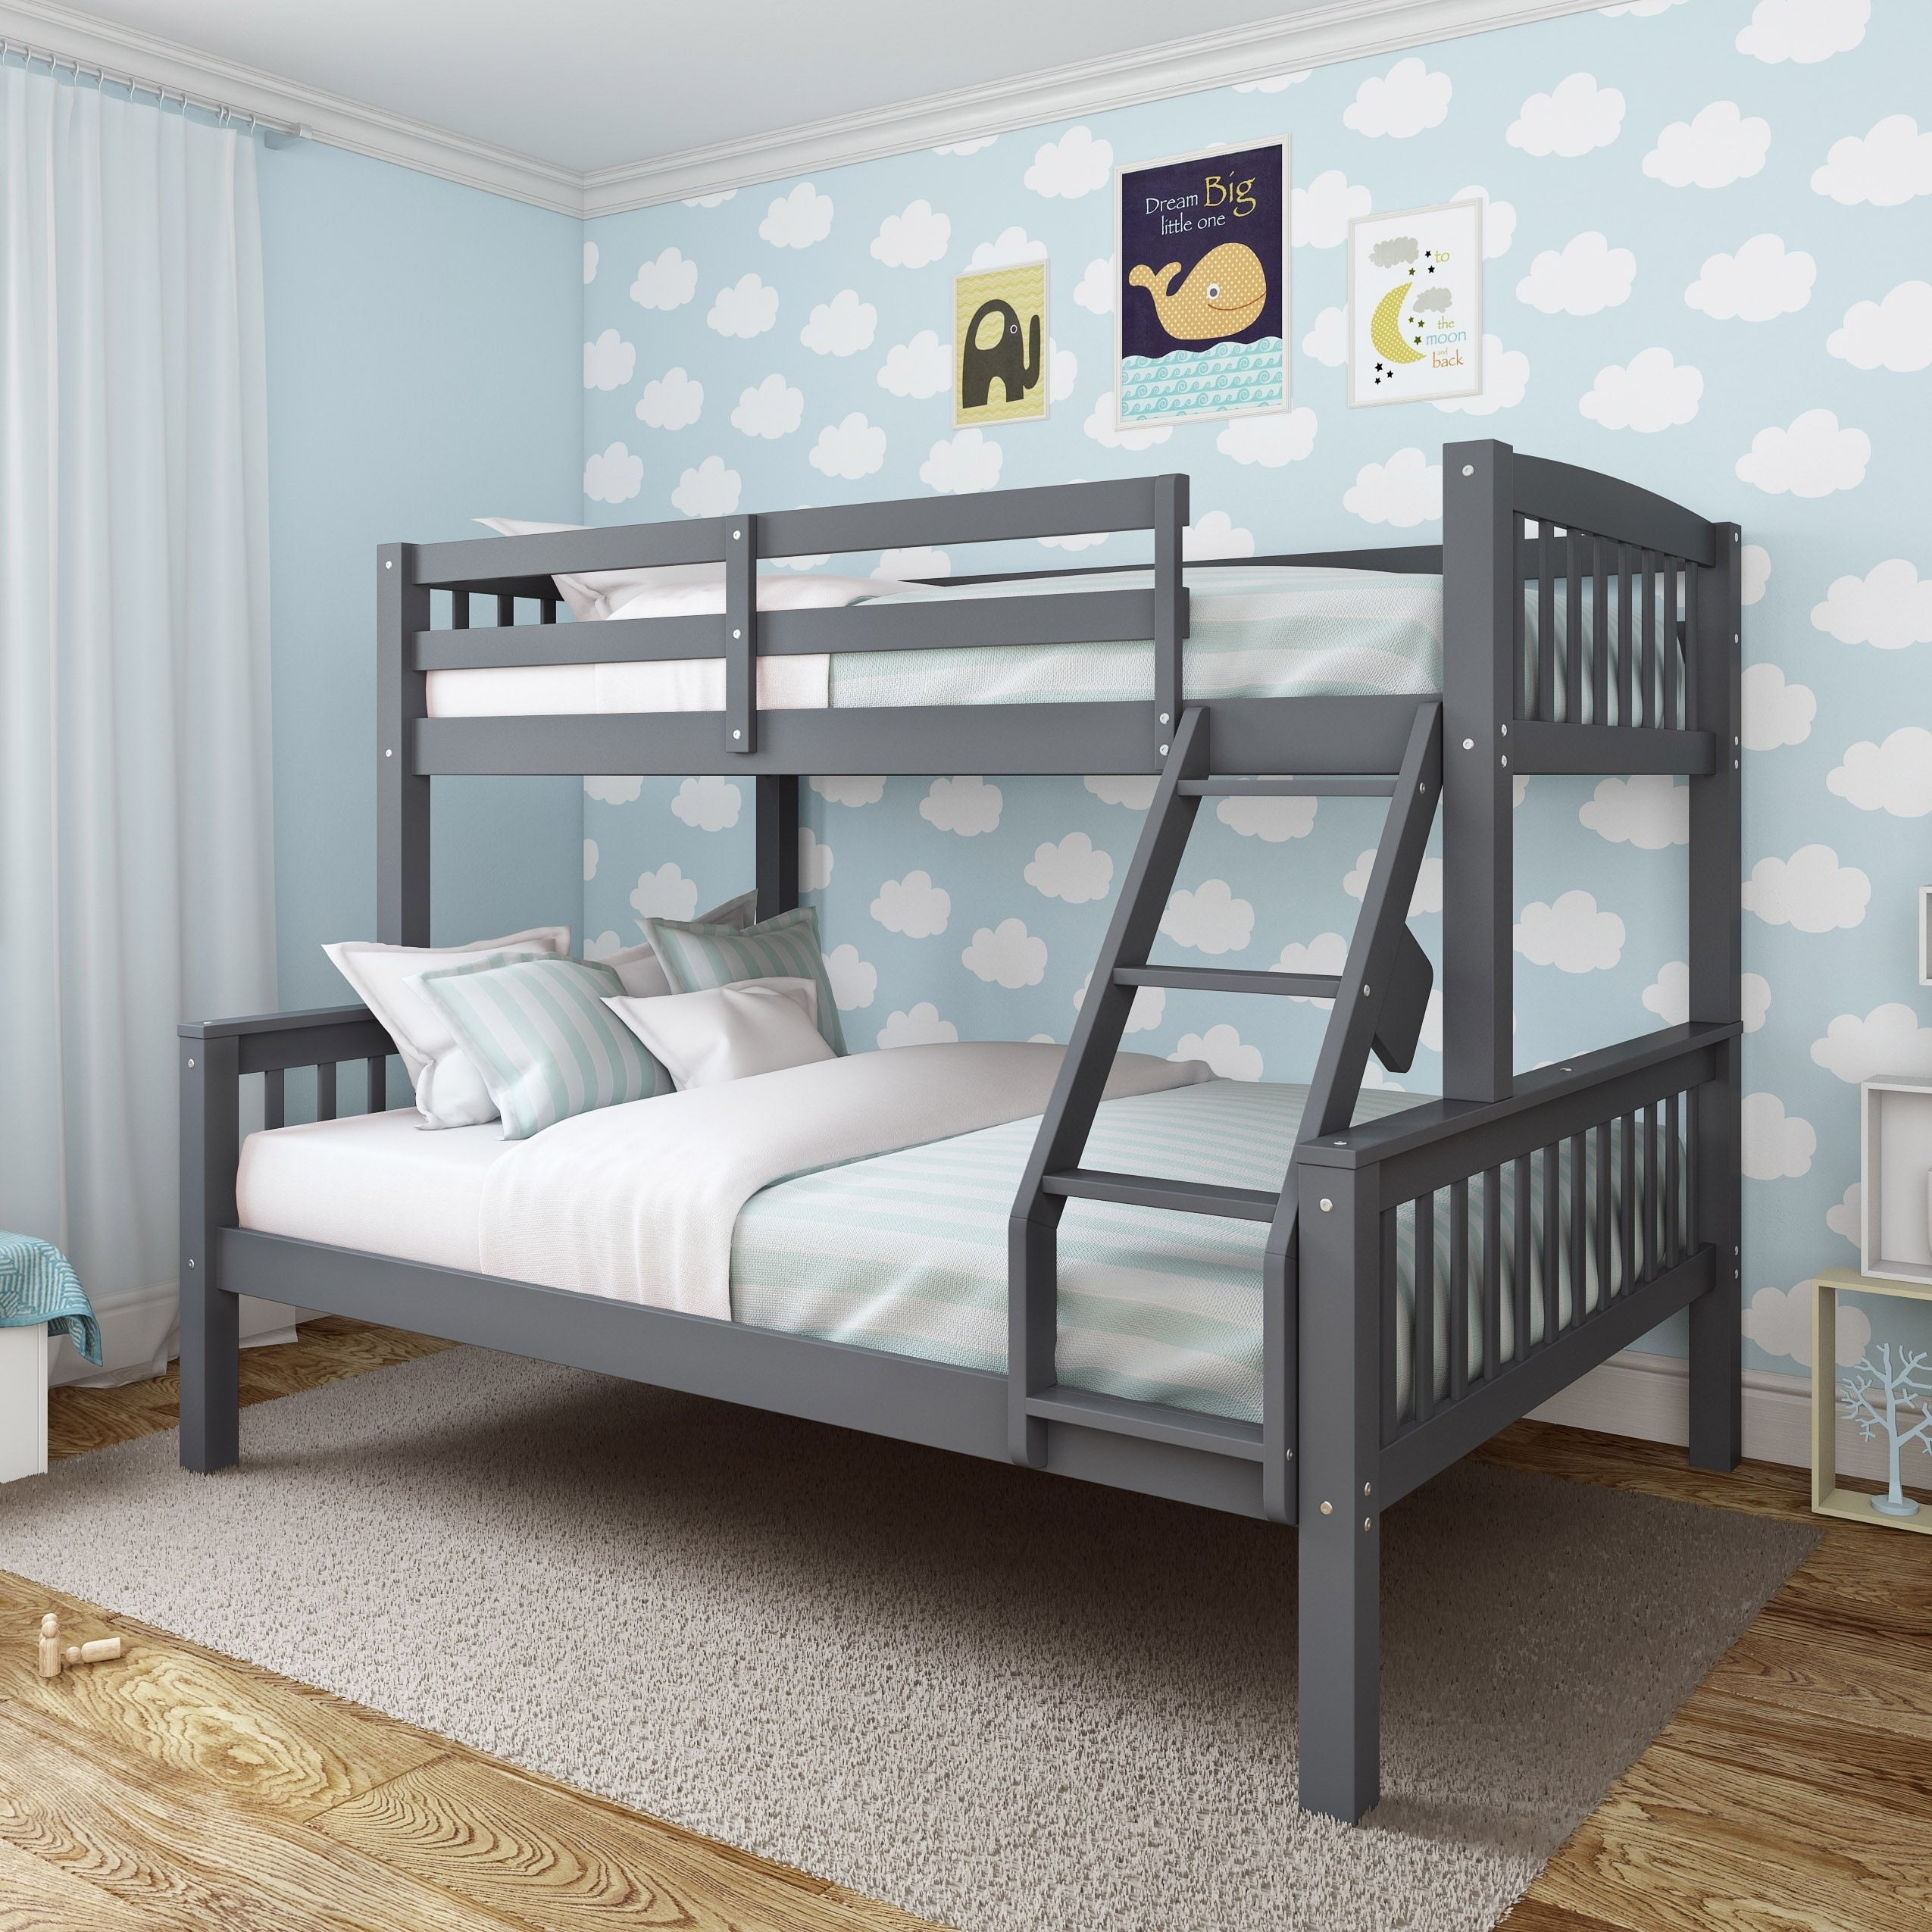 Full Double Bed Taylor Olive Christian Twin Single Over Full Double Bunk Bed